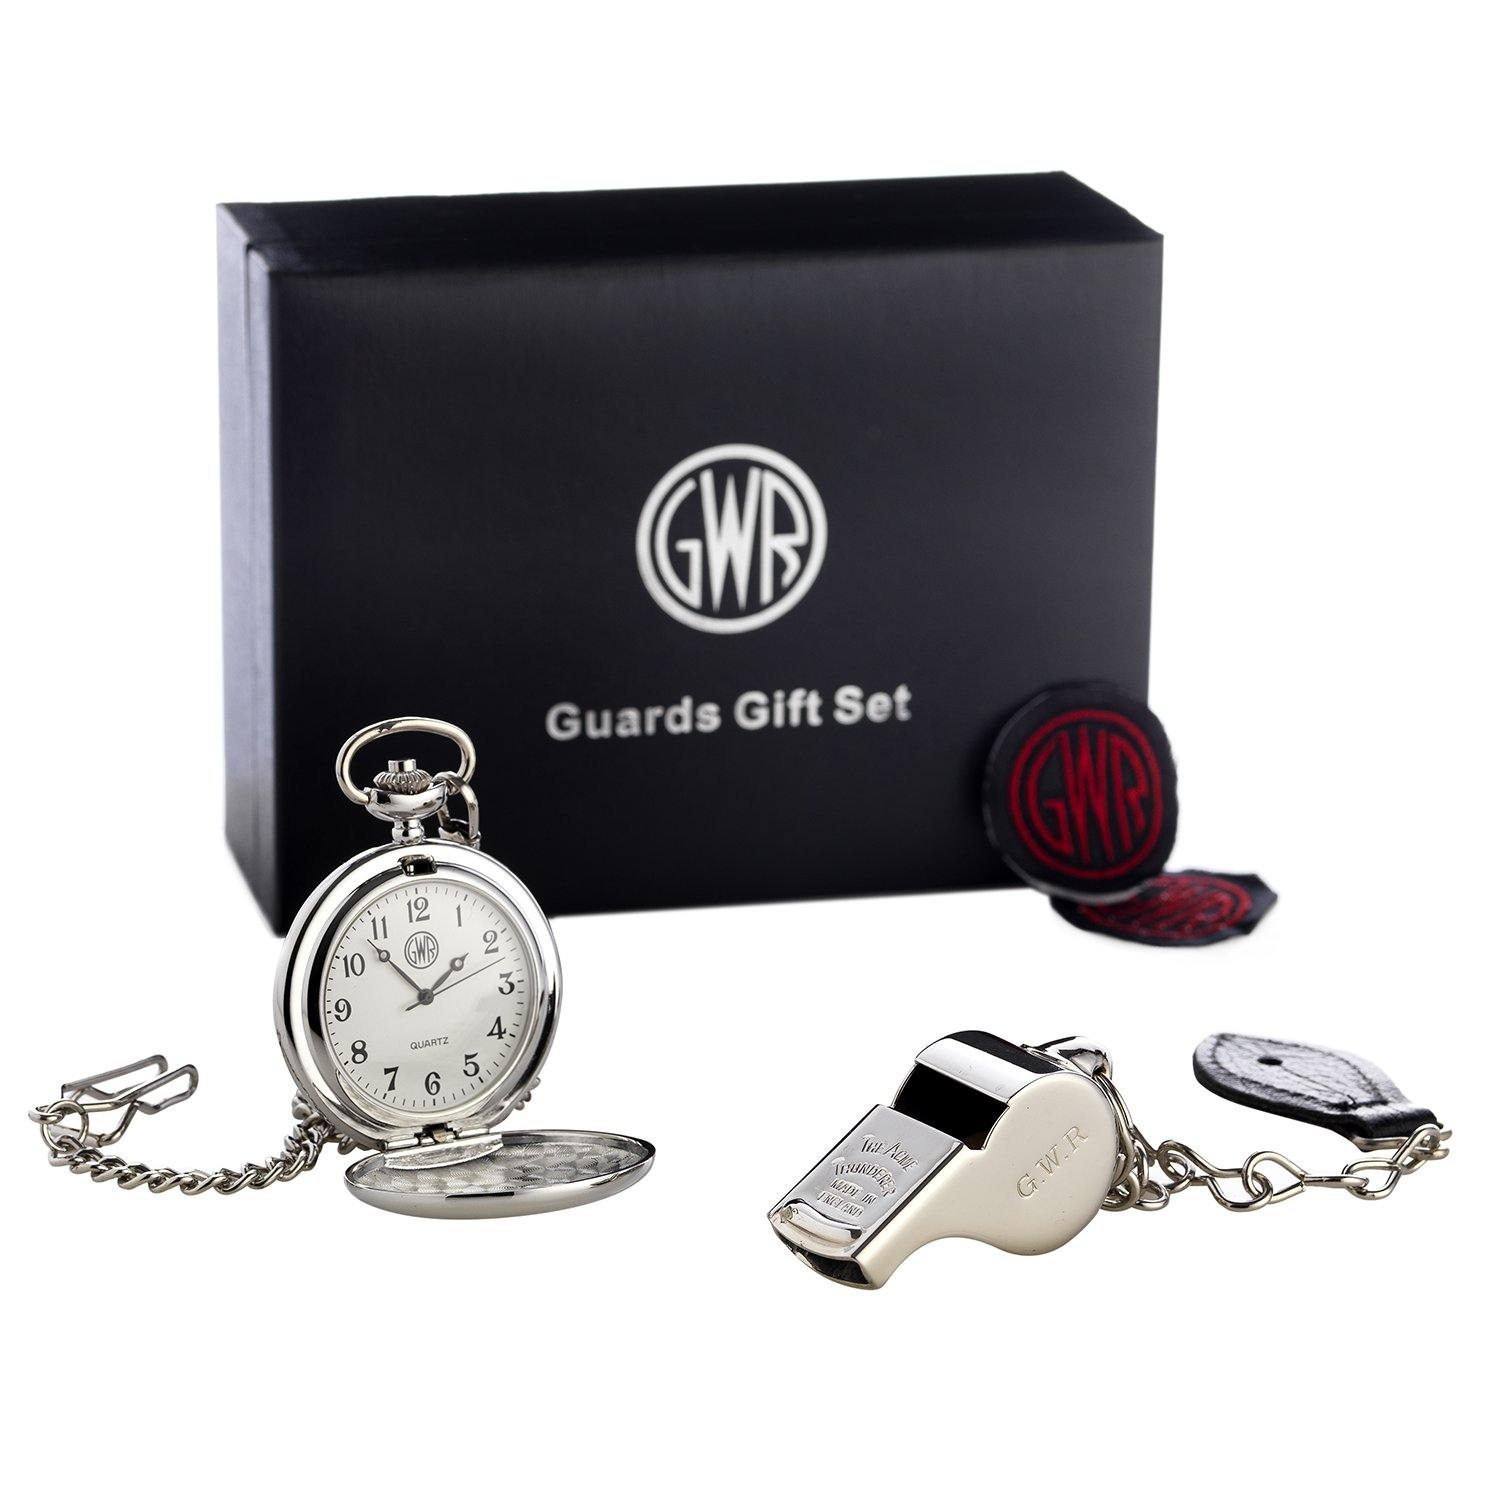 GWR Guards Gift Set